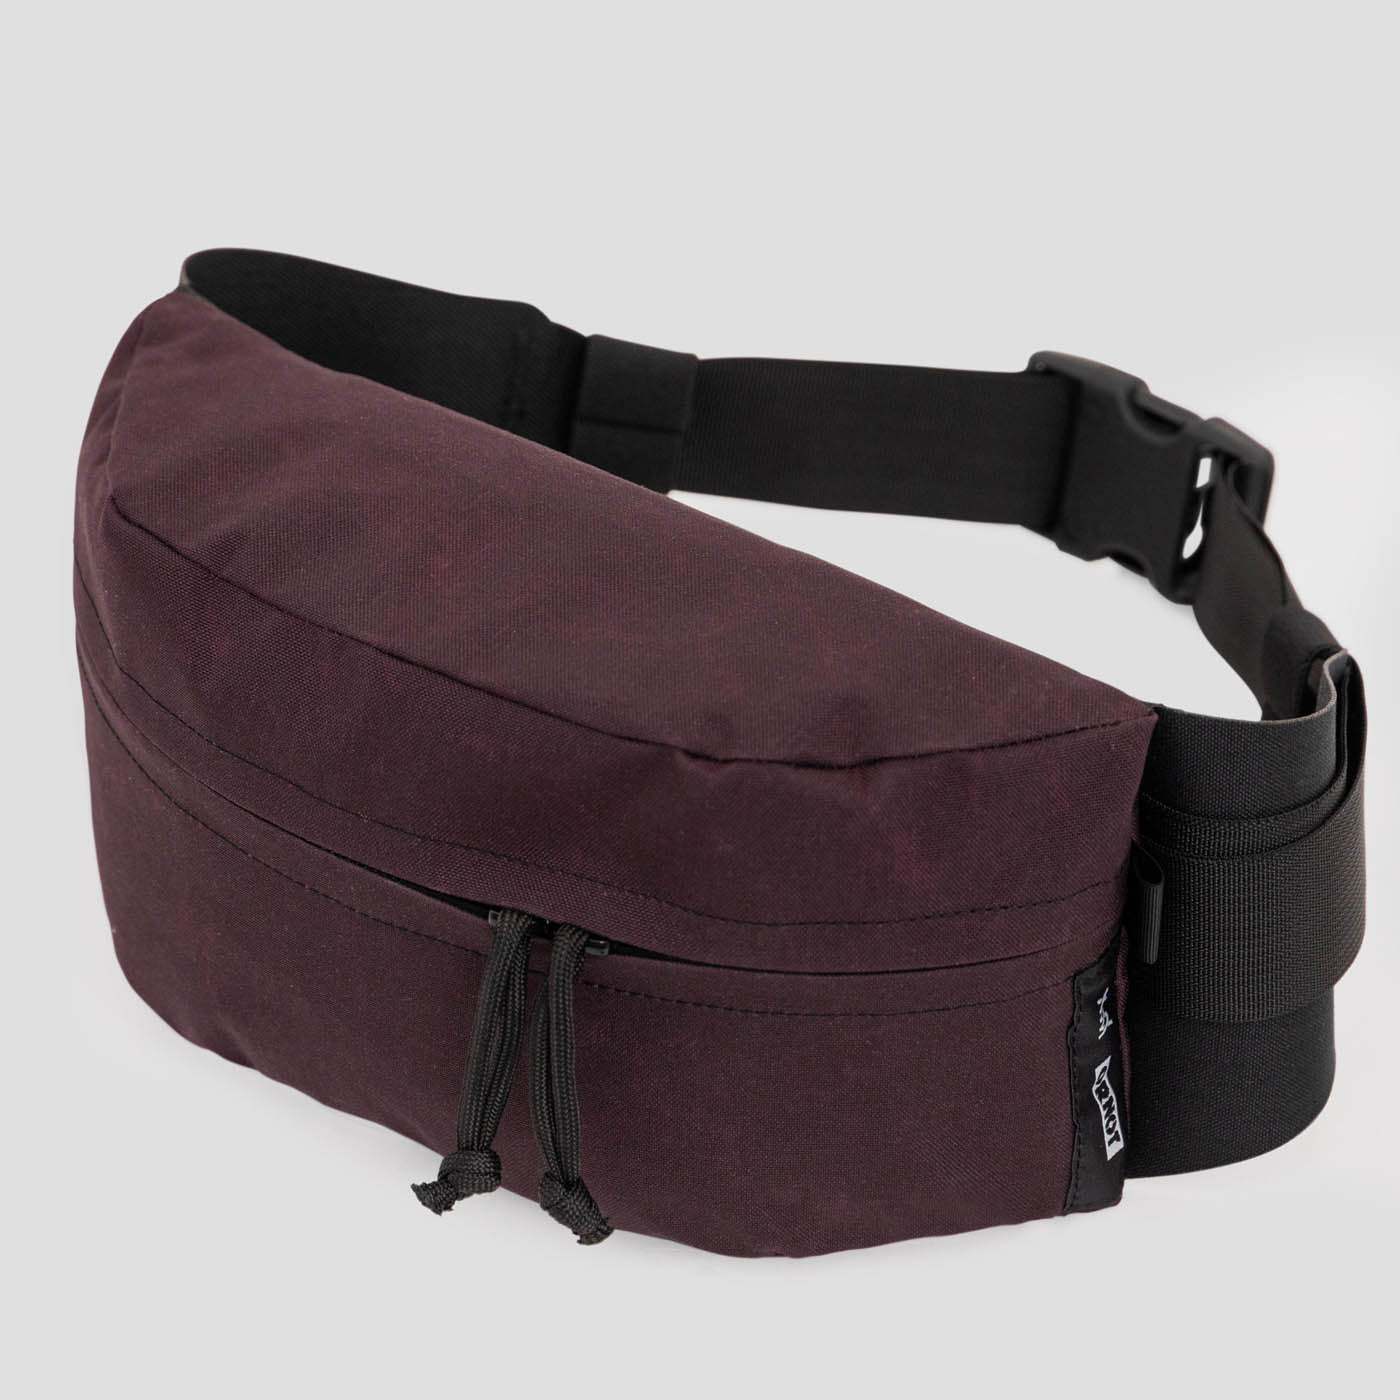 Hip Pack - Burgundy